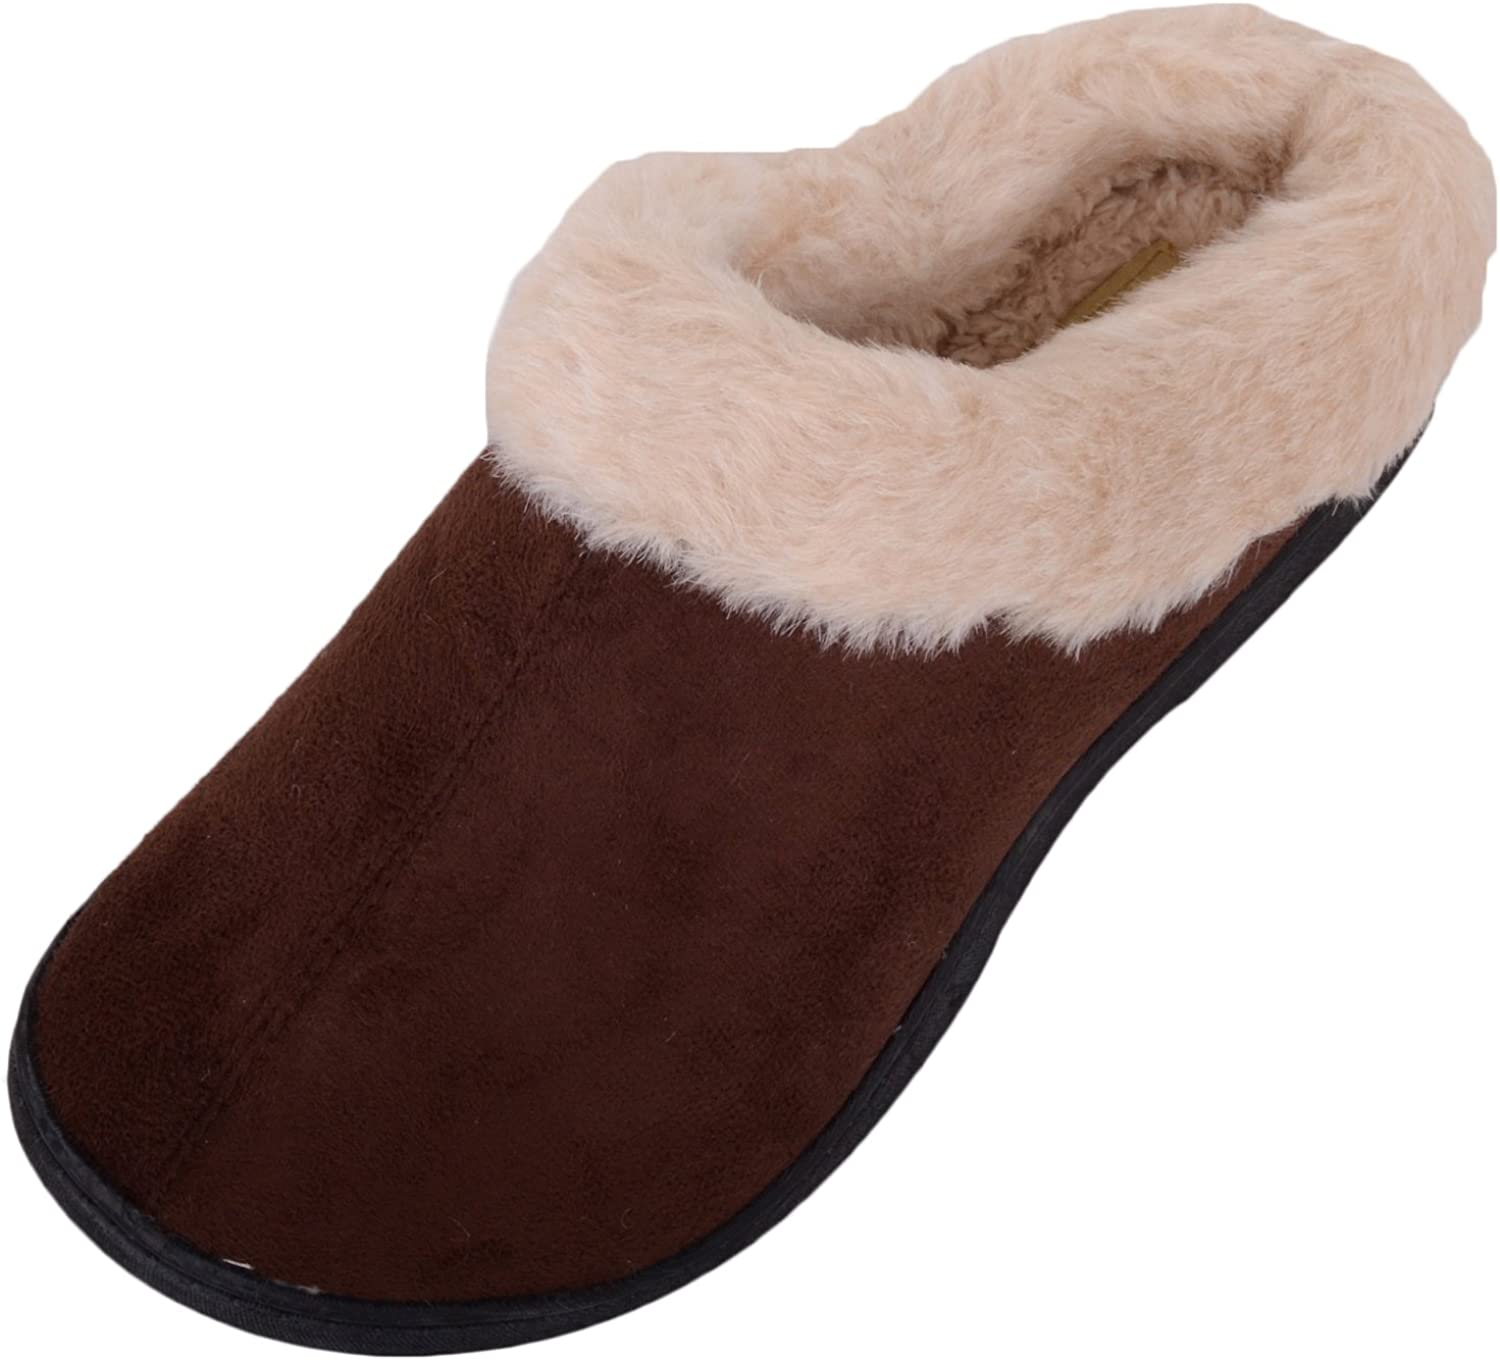 ABSOLUTE FOOTWEAR Ladies Womens Slip On Slippers Mules Indoor shoes with Warm Faux Fur Inners